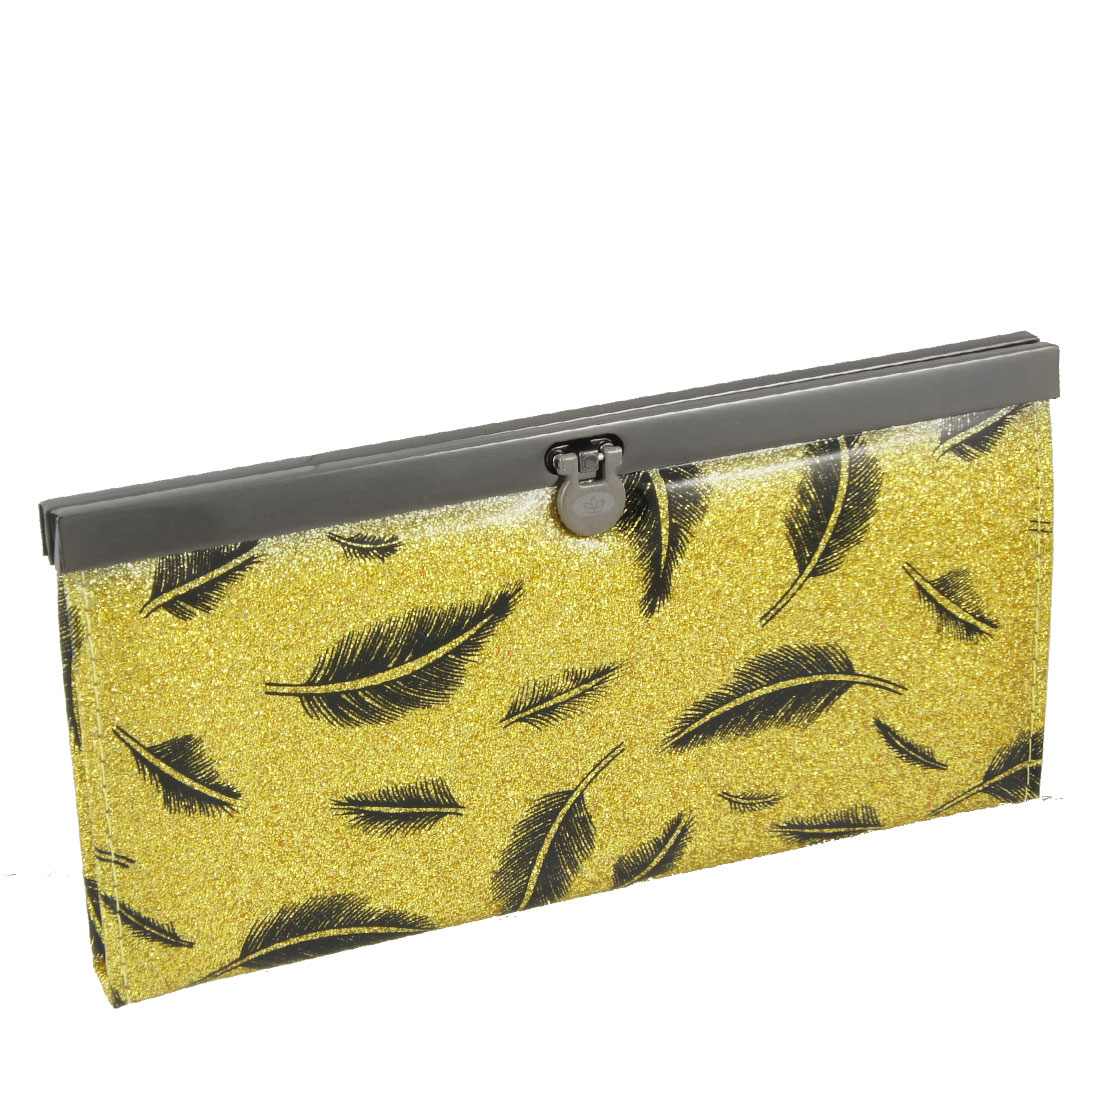 Black Feathers Prints Gold Tone Glitter Powder Decor Faux Leather Clutch Wallet